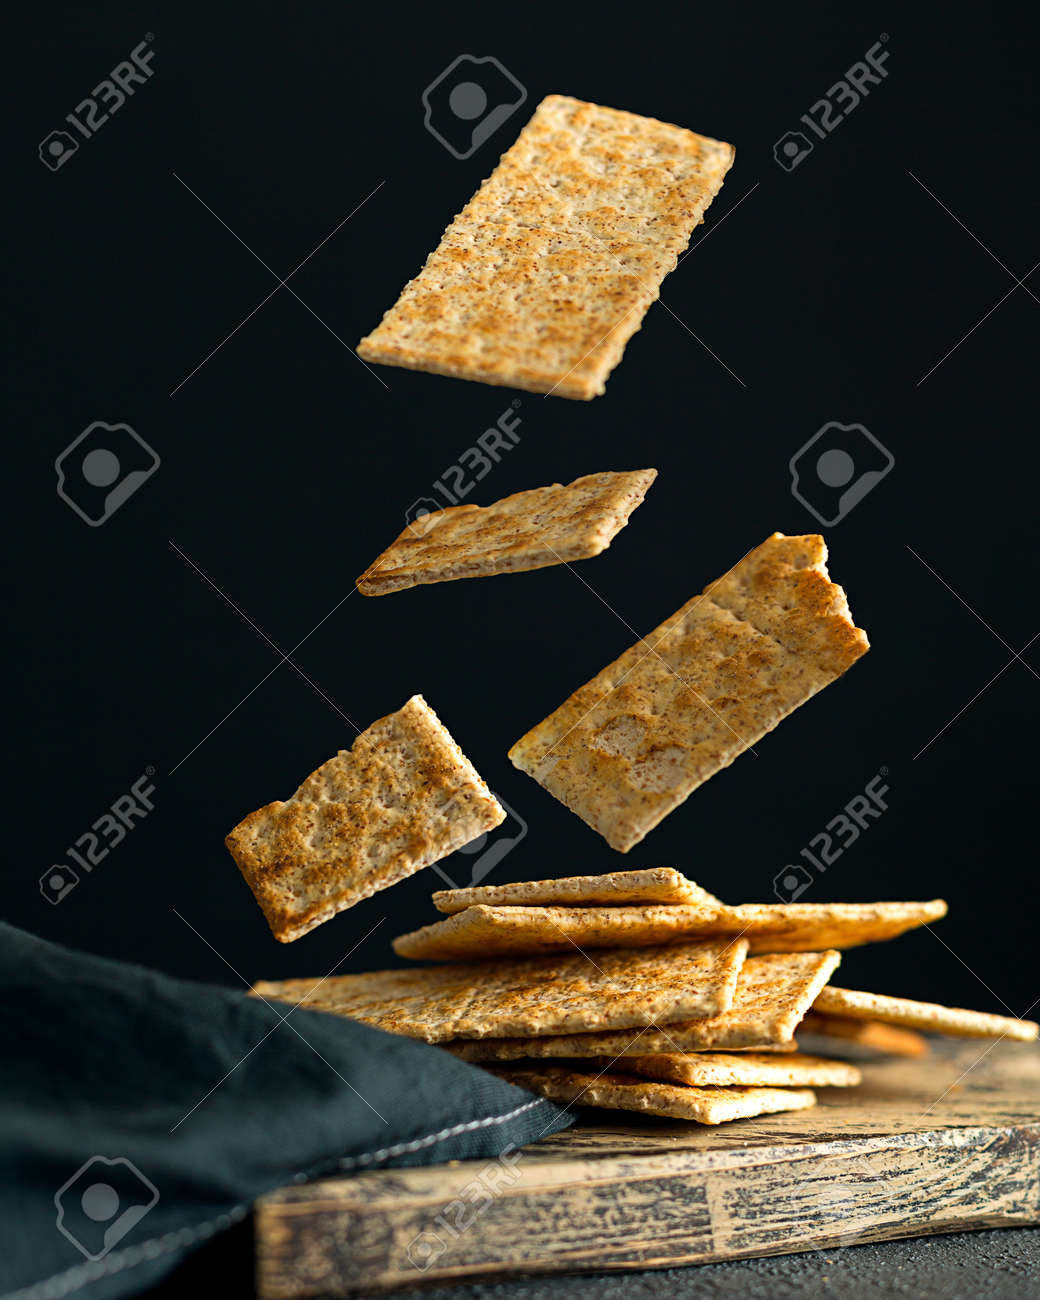 Creative concept with falling food on black backdrop - 173342519